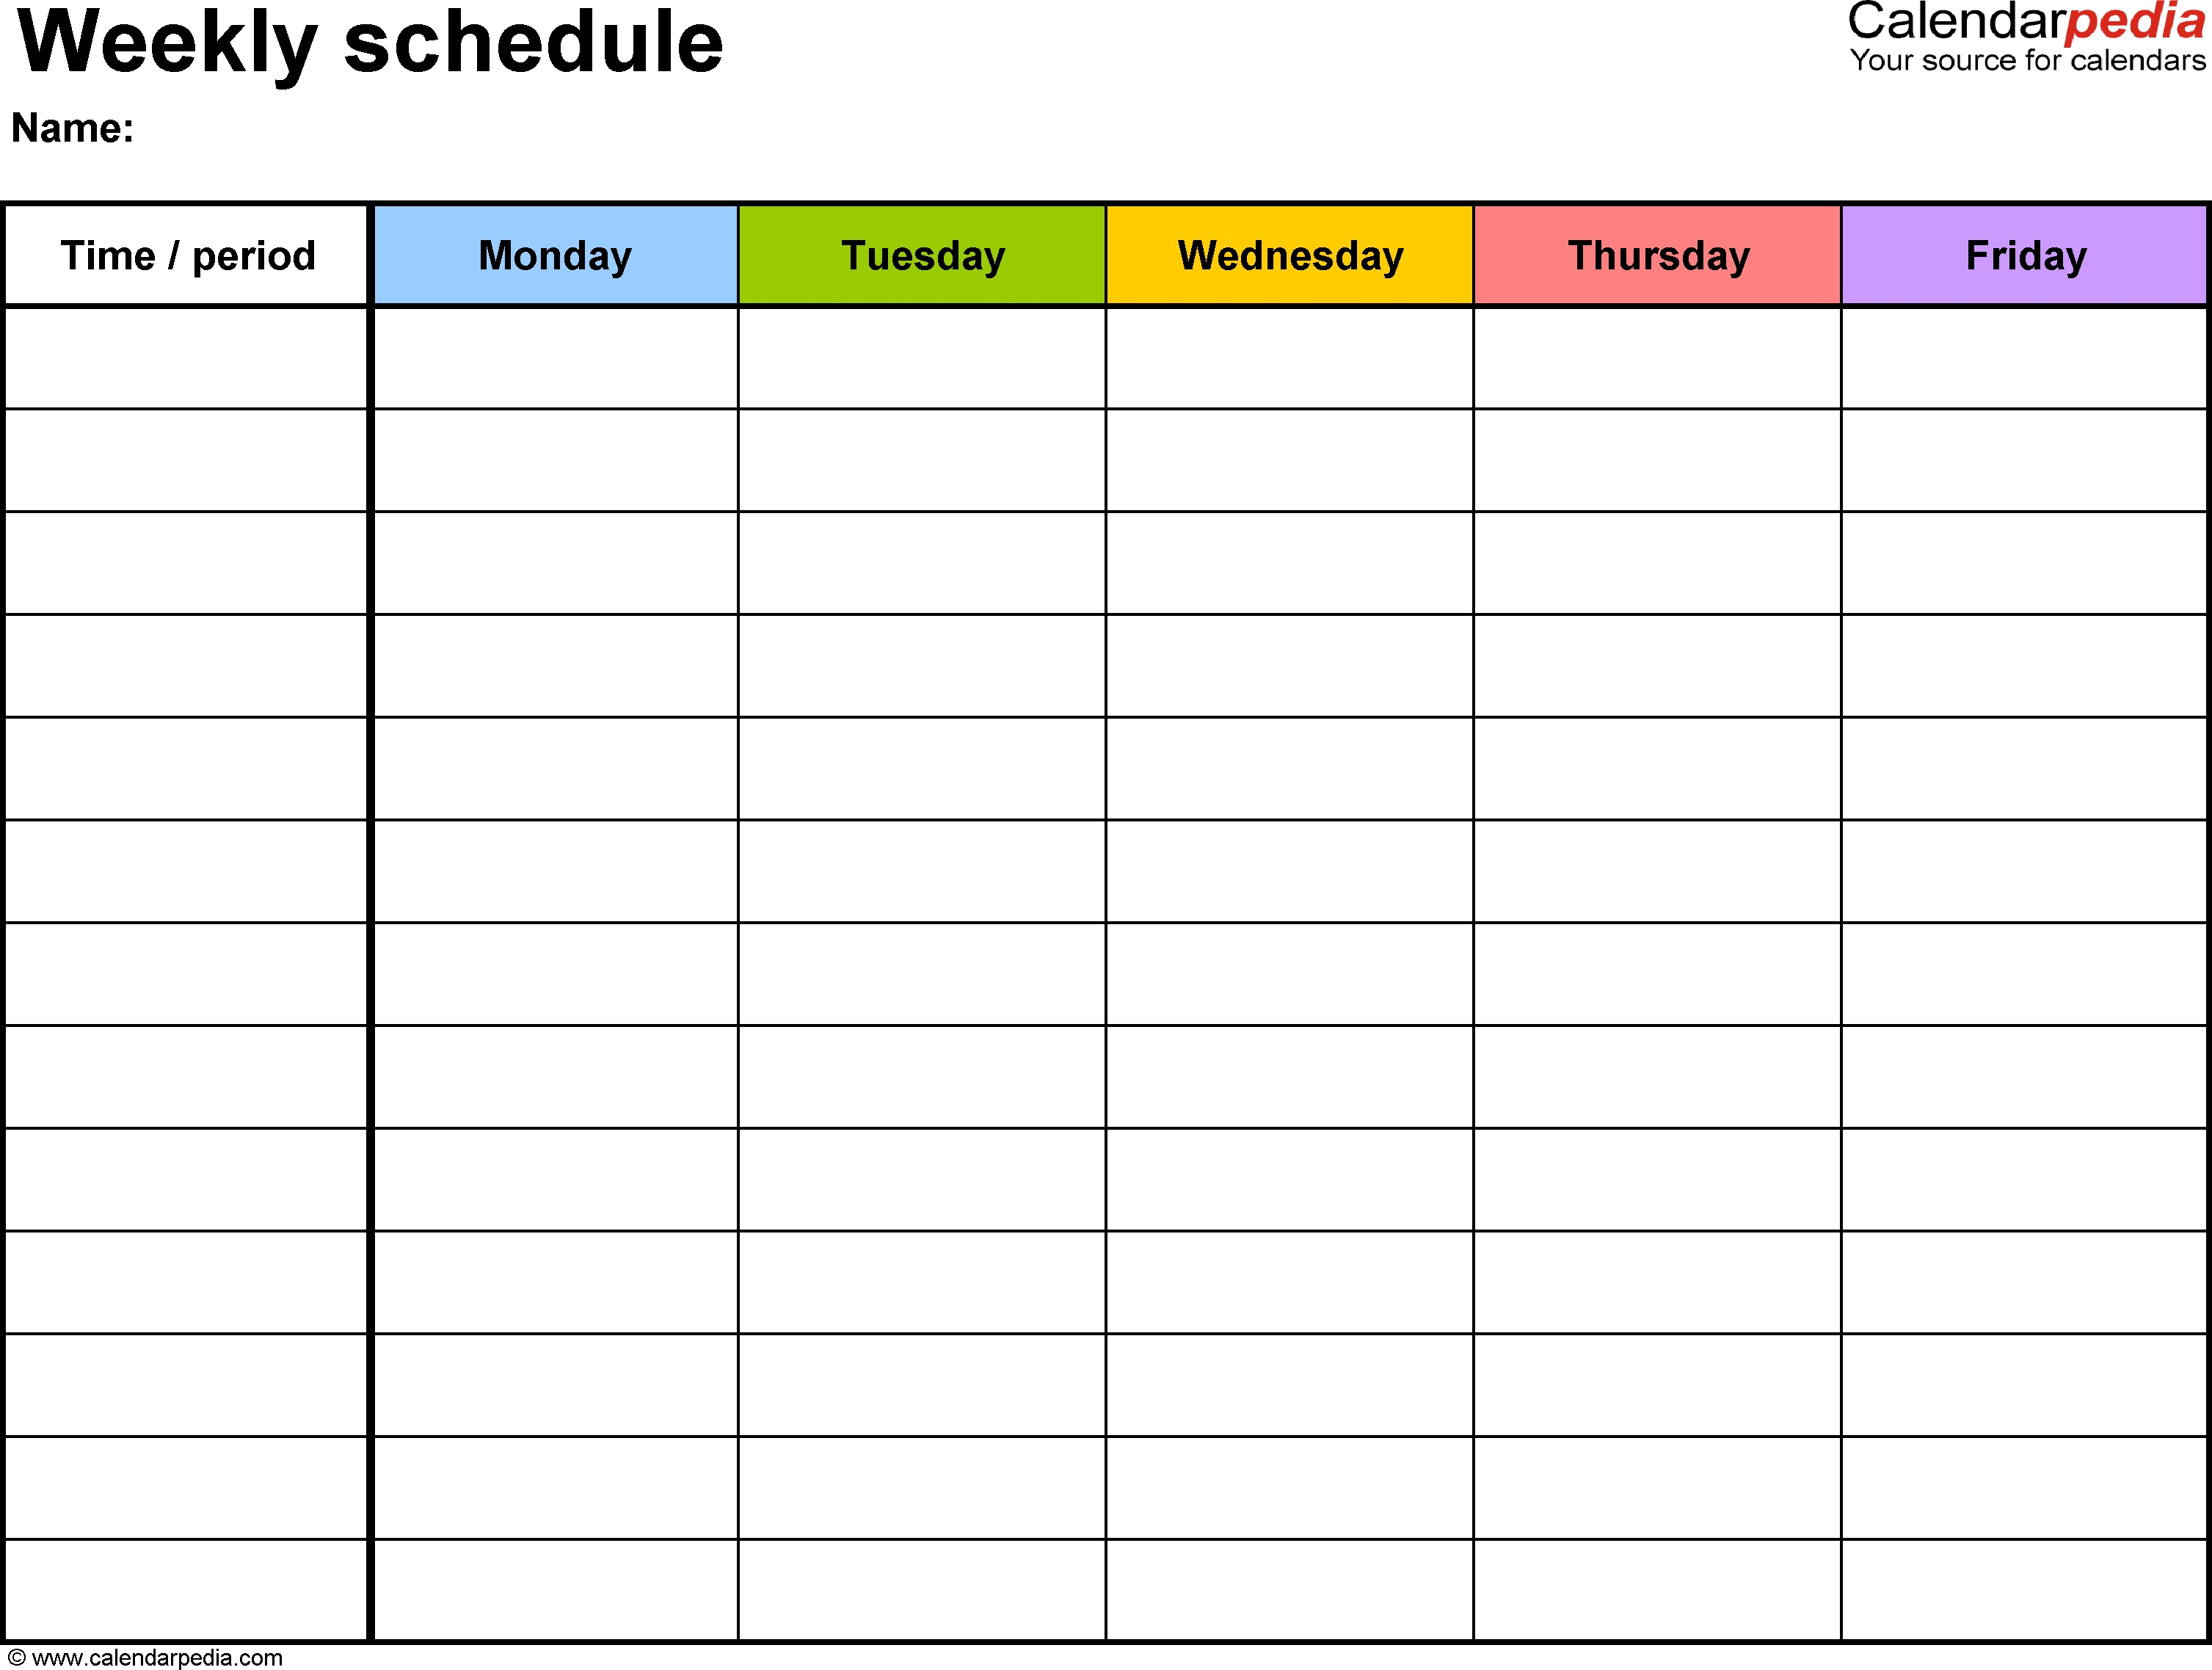 Free Weekly Schedule Templates For Pdf - 18 Templates in Printable Weekly Calendar With Top 5 For Week